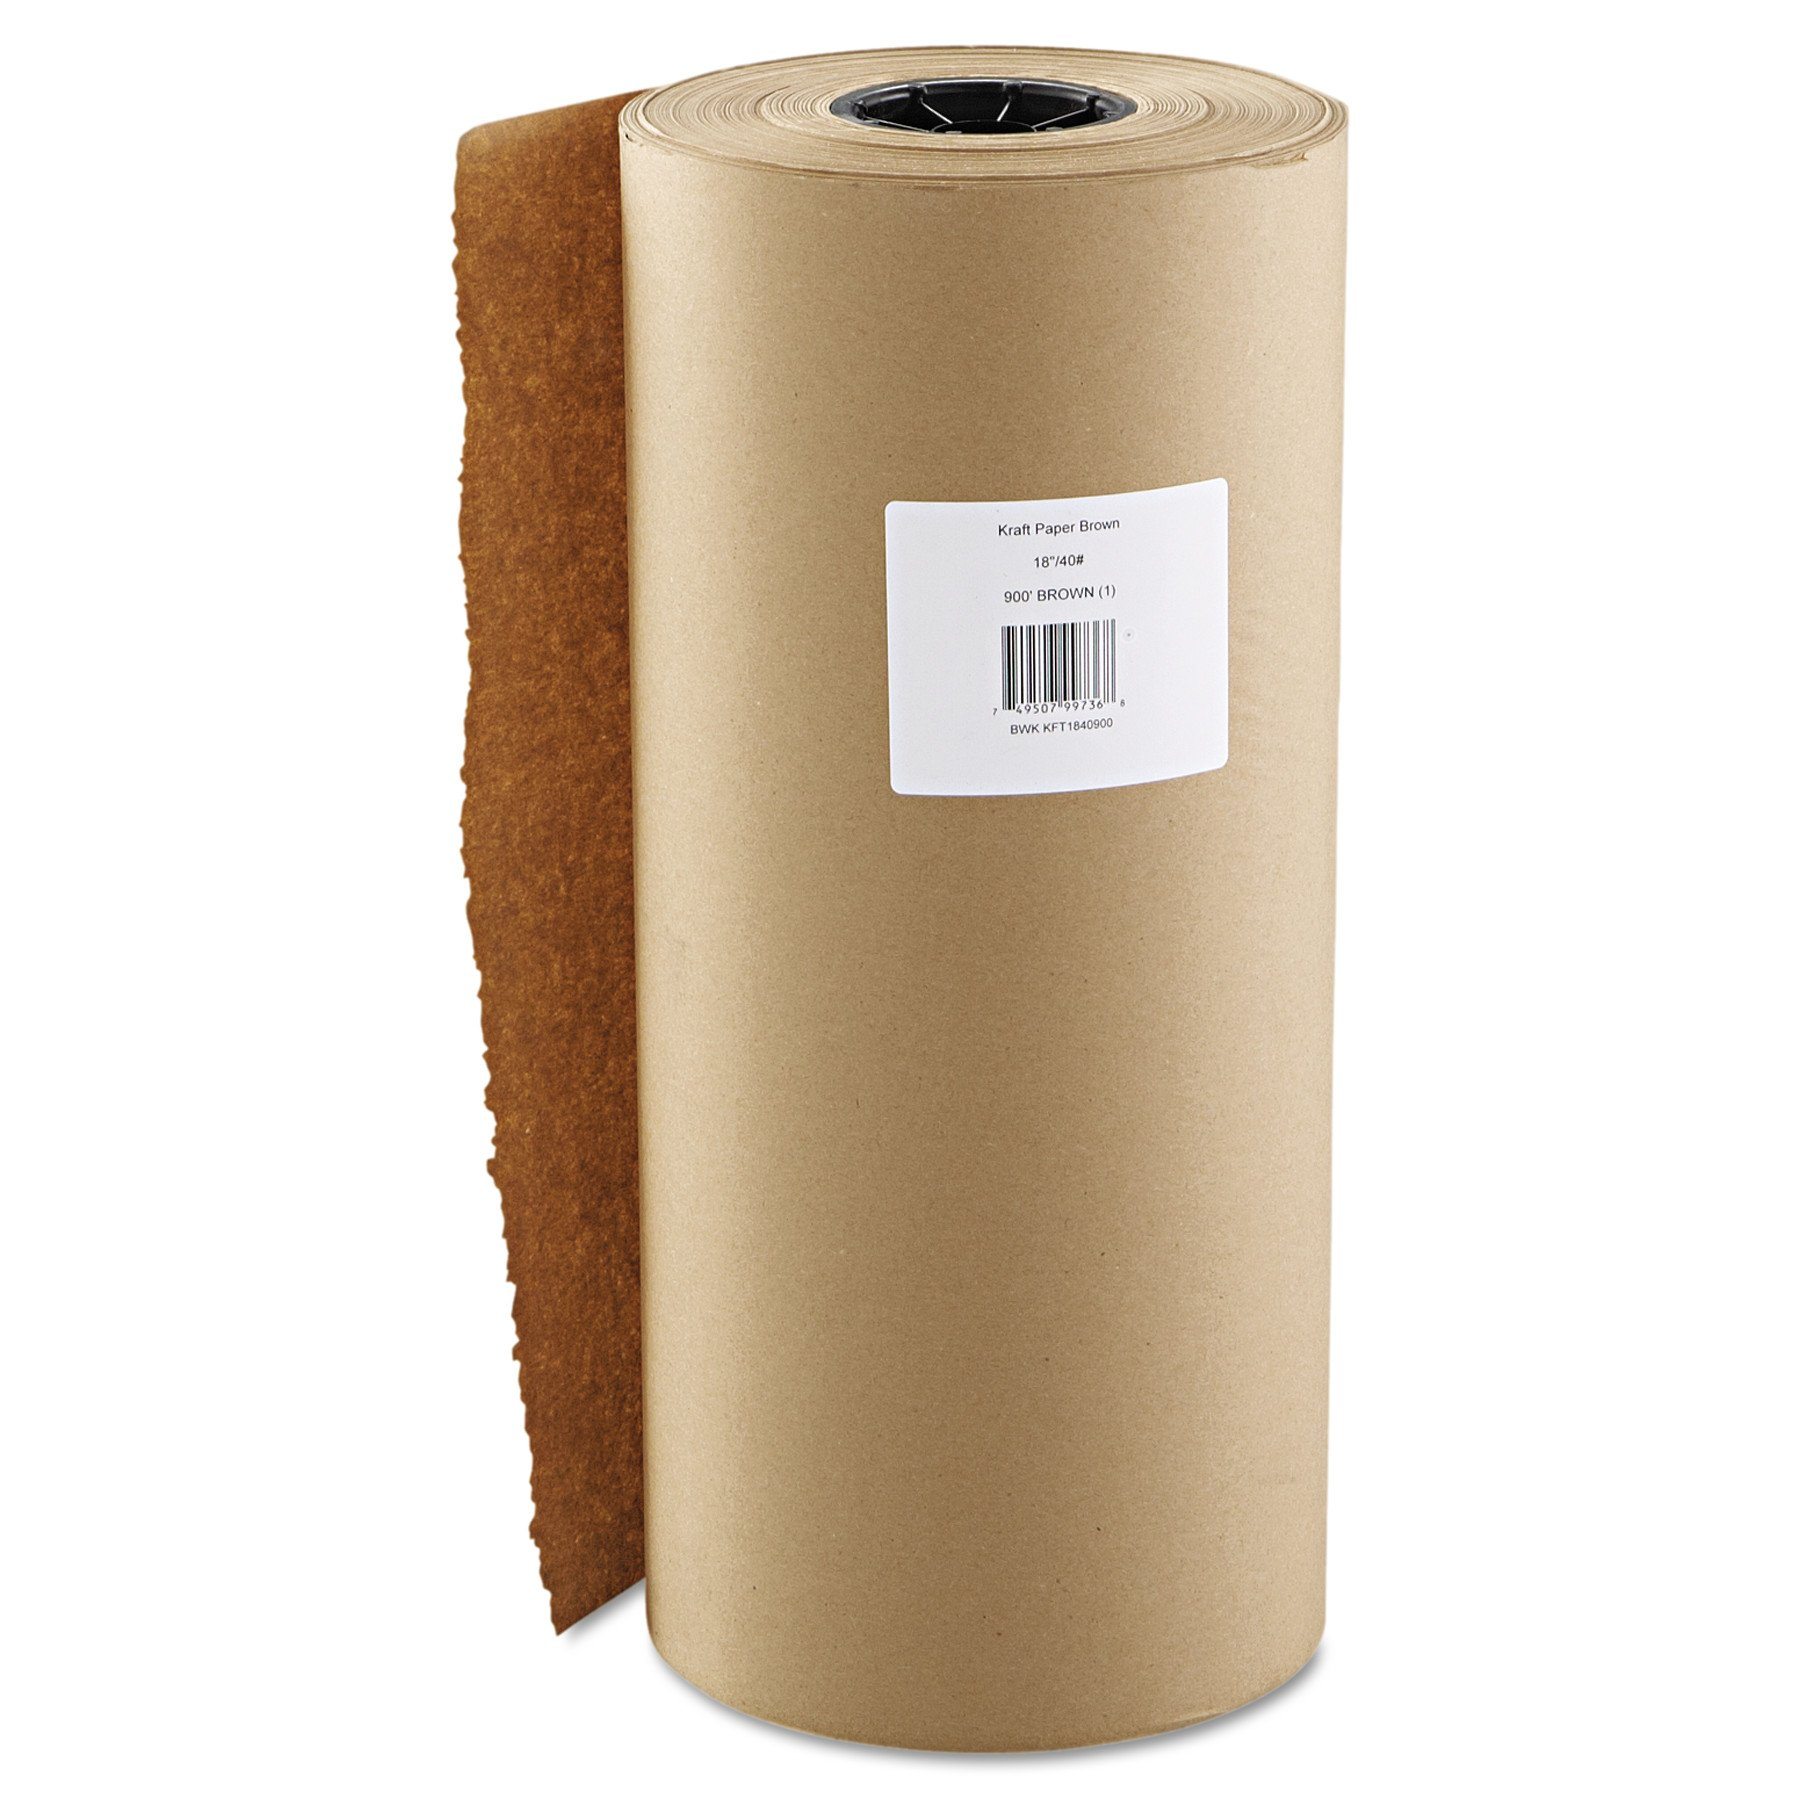 Boardwalk K1840900 Kraft Paper, 18'' x 900ft, Brown